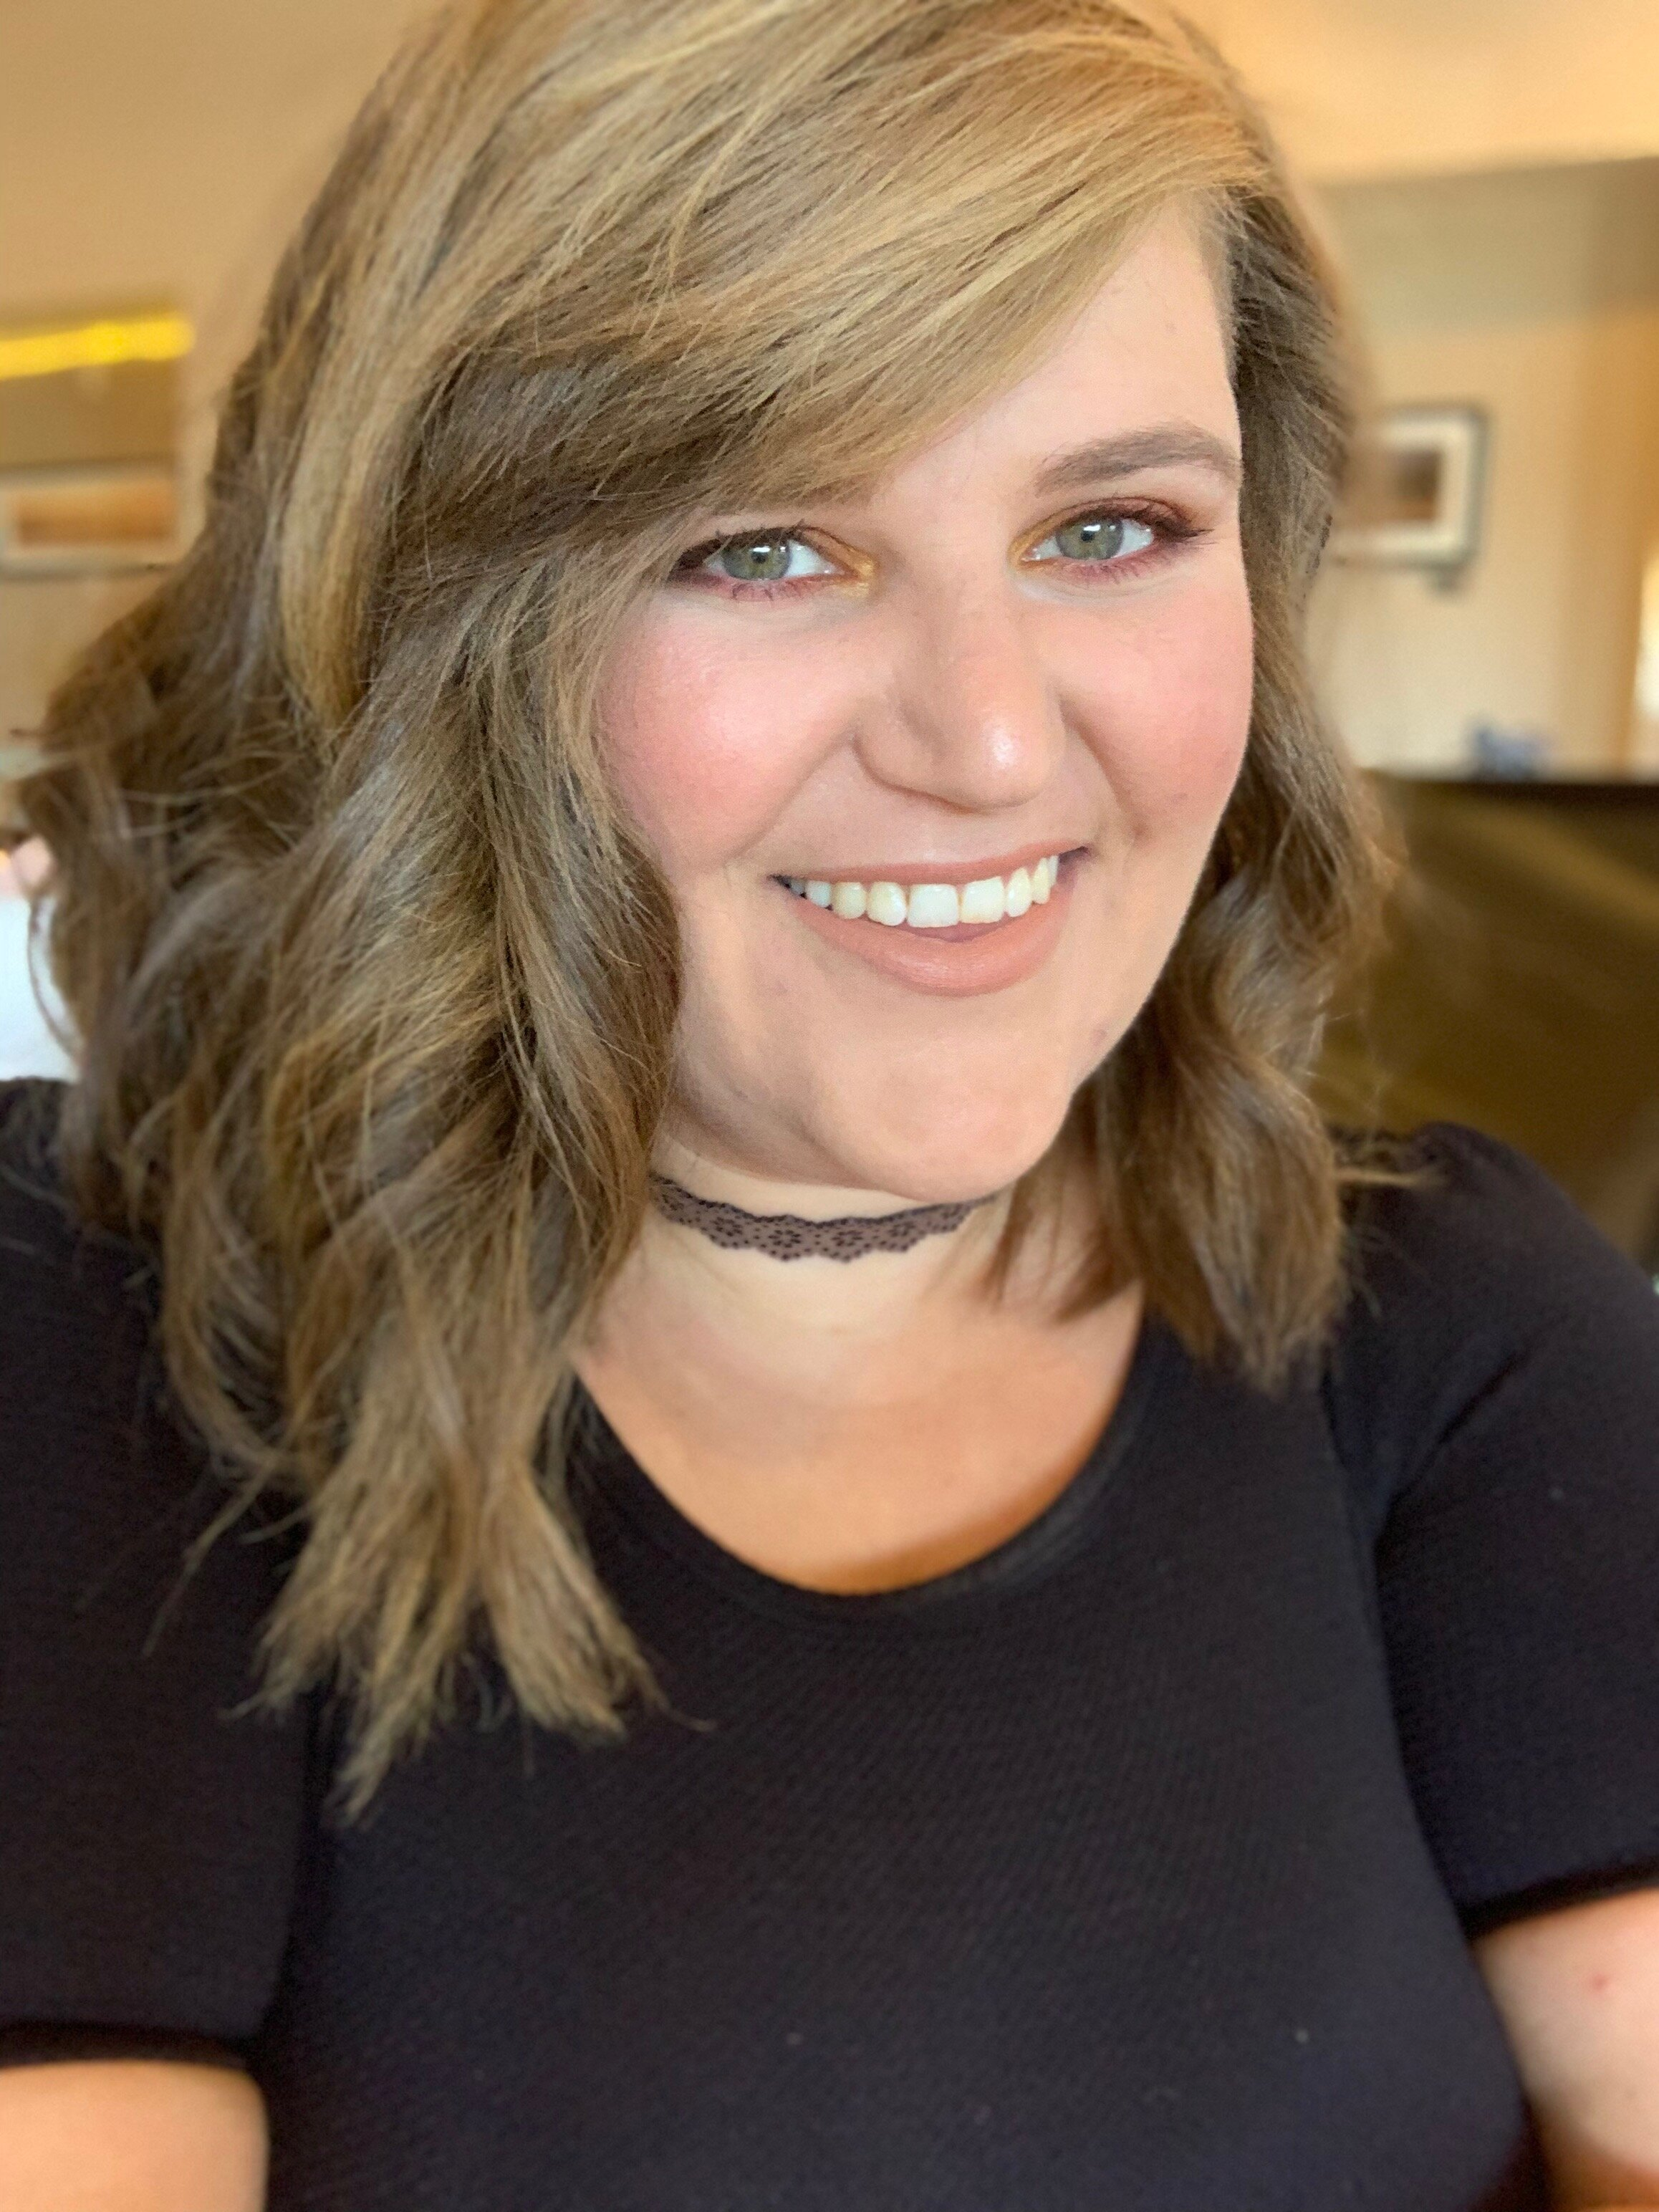 Amy - Amy joined NH2 in 2018. As a seasoned stylist, Amy brings technical excellence, elevated communication, and confidence to guests daily. in 2015, Amy won the Bay Area Student Hairdressing Awards, an NH2 mentorship designed to recognize and celebrate excellence in hairdressing professional. We are honored to have recognized Amy's talent in her infancy and to have her as the second BASHA winner to become an intergal member of the NH2 team.